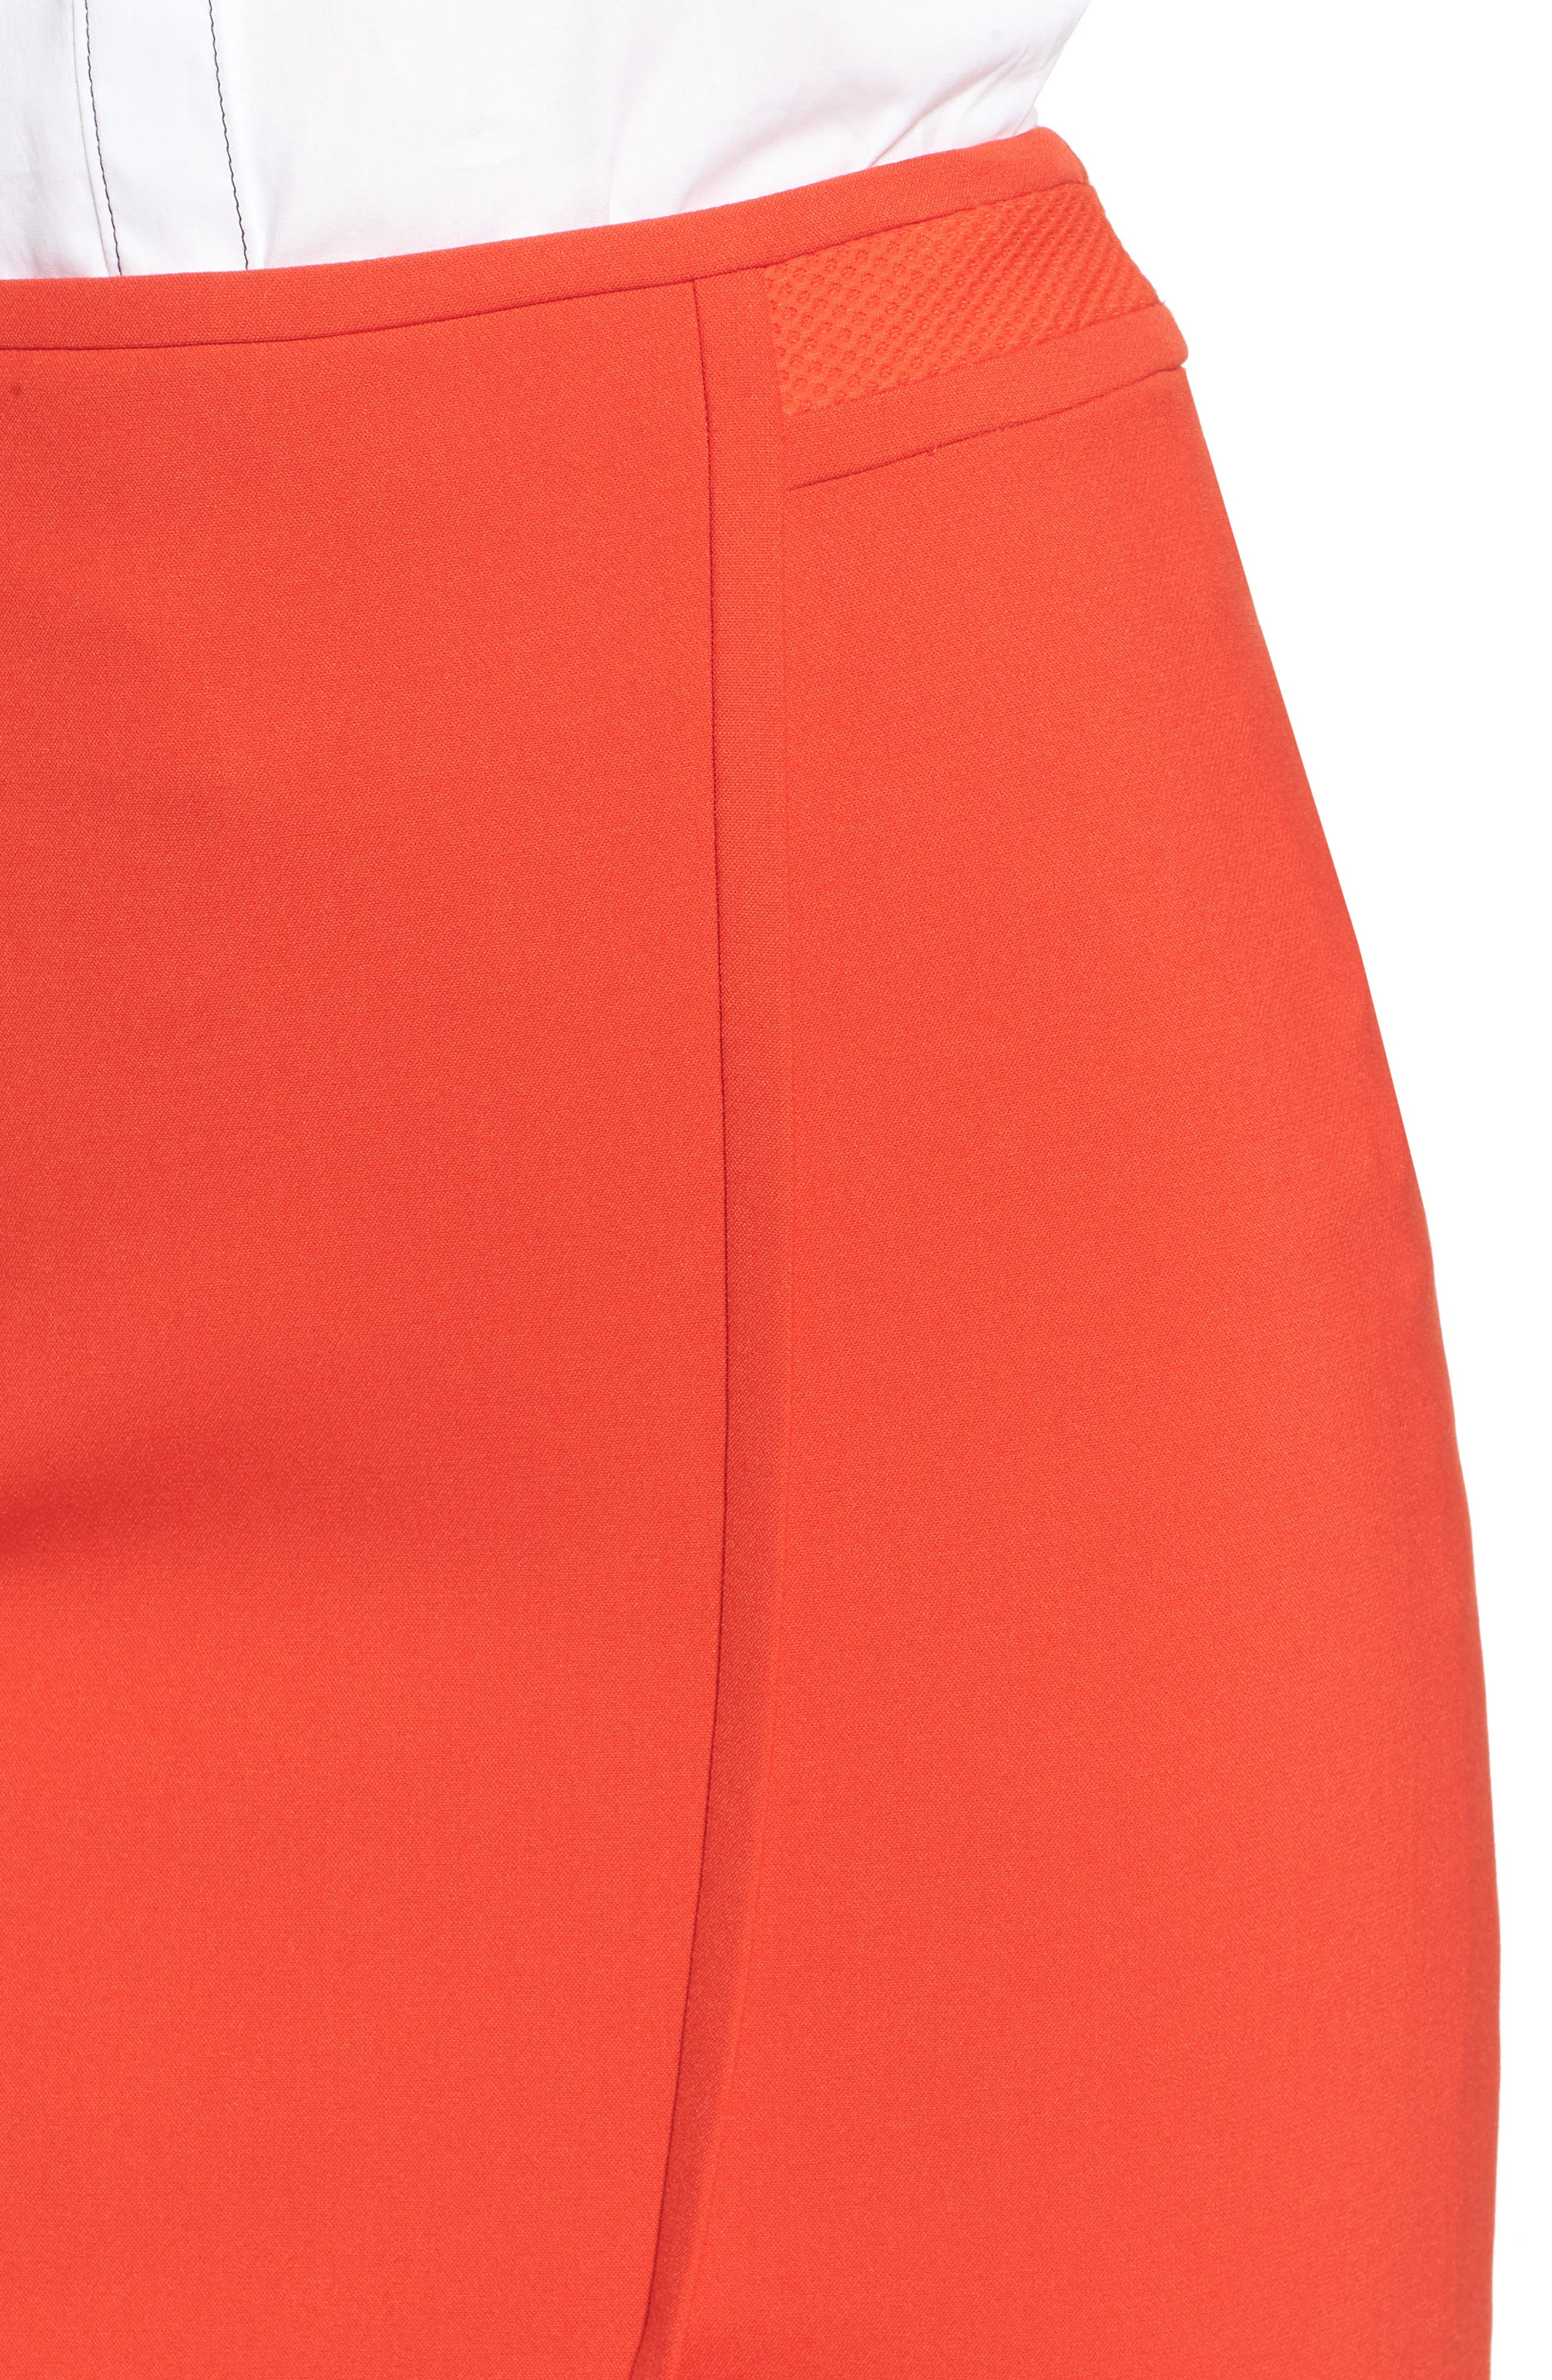 Vadama Ponte Pencil Skirt,                             Alternate thumbnail 4, color,                             Sunset Orange